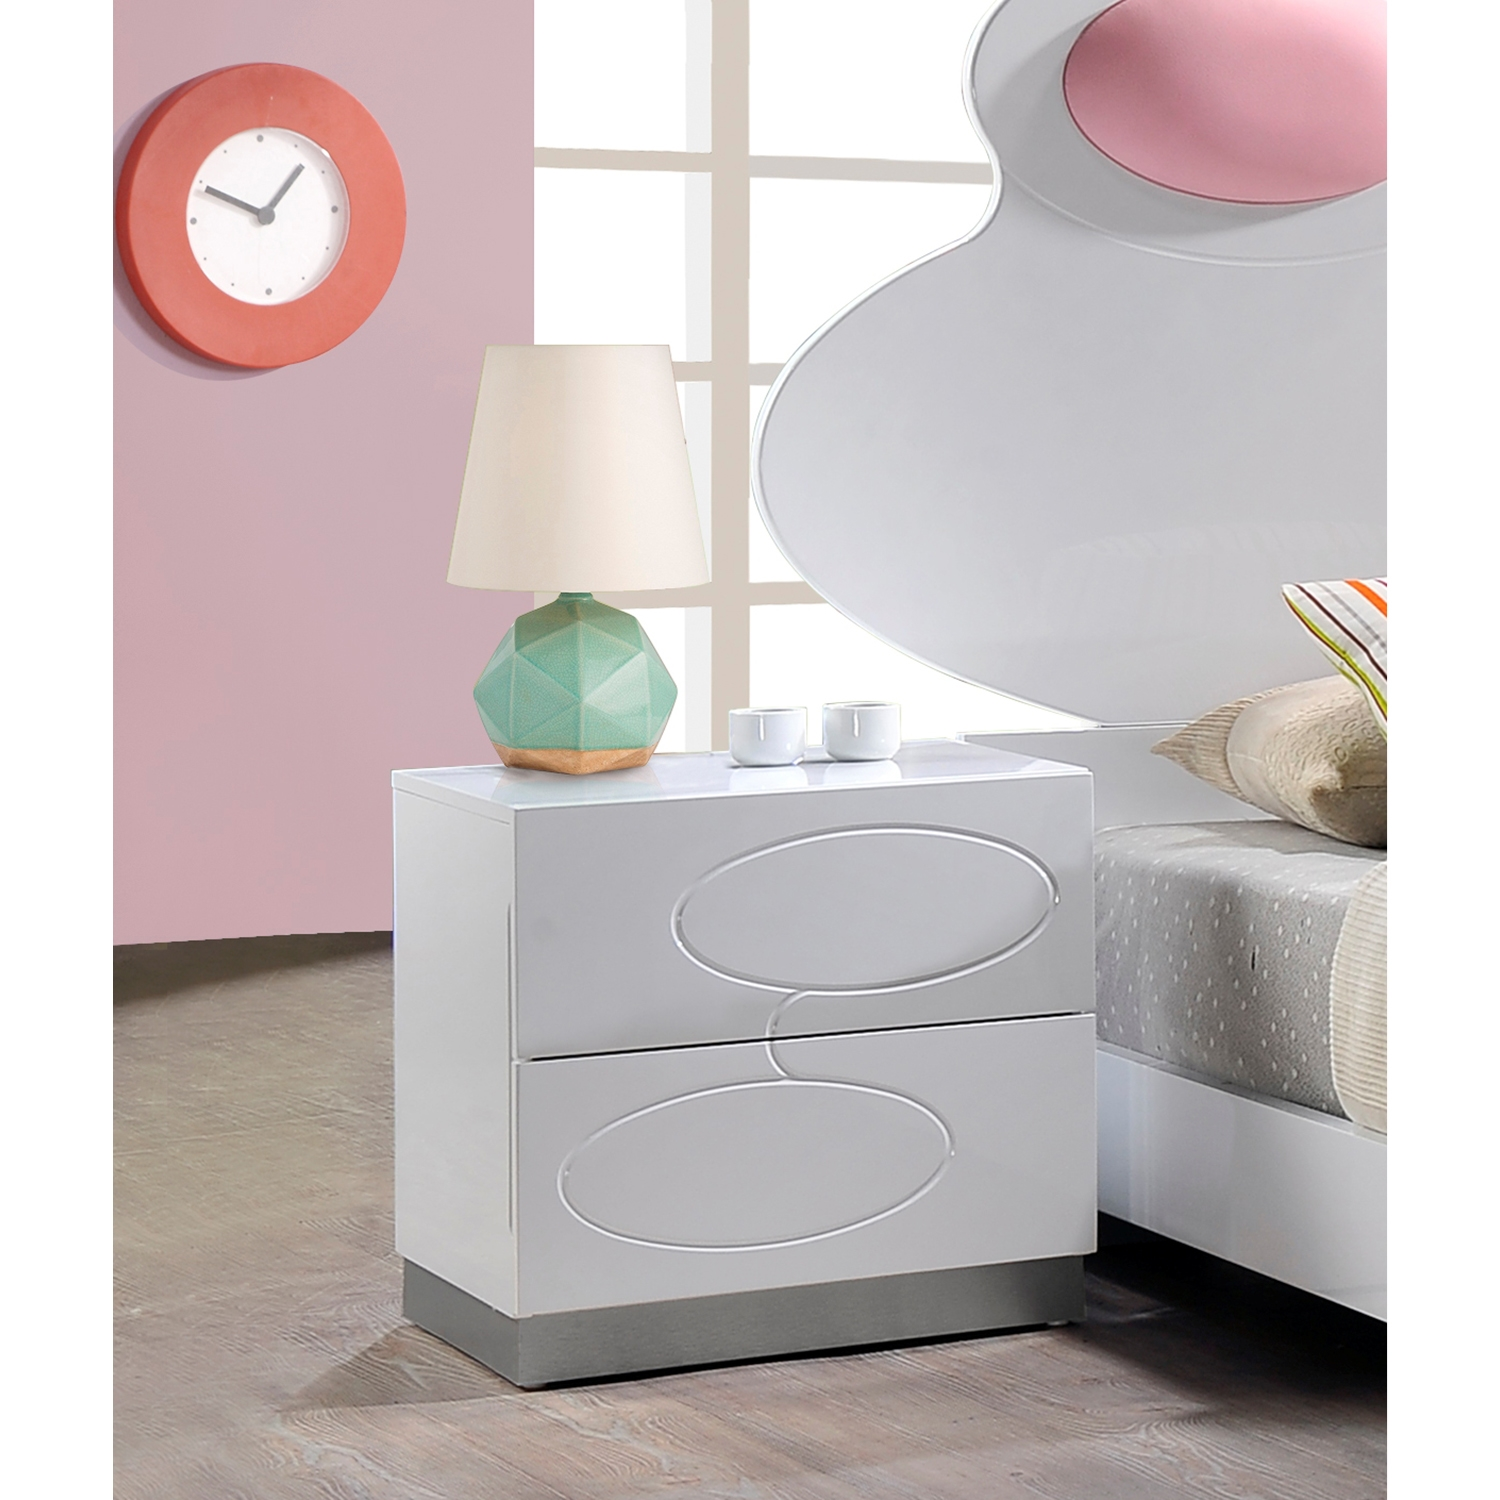 Lola Nightstand - High Gloss White - GLO-LOLA-228-S-NIGHTSTAND-M